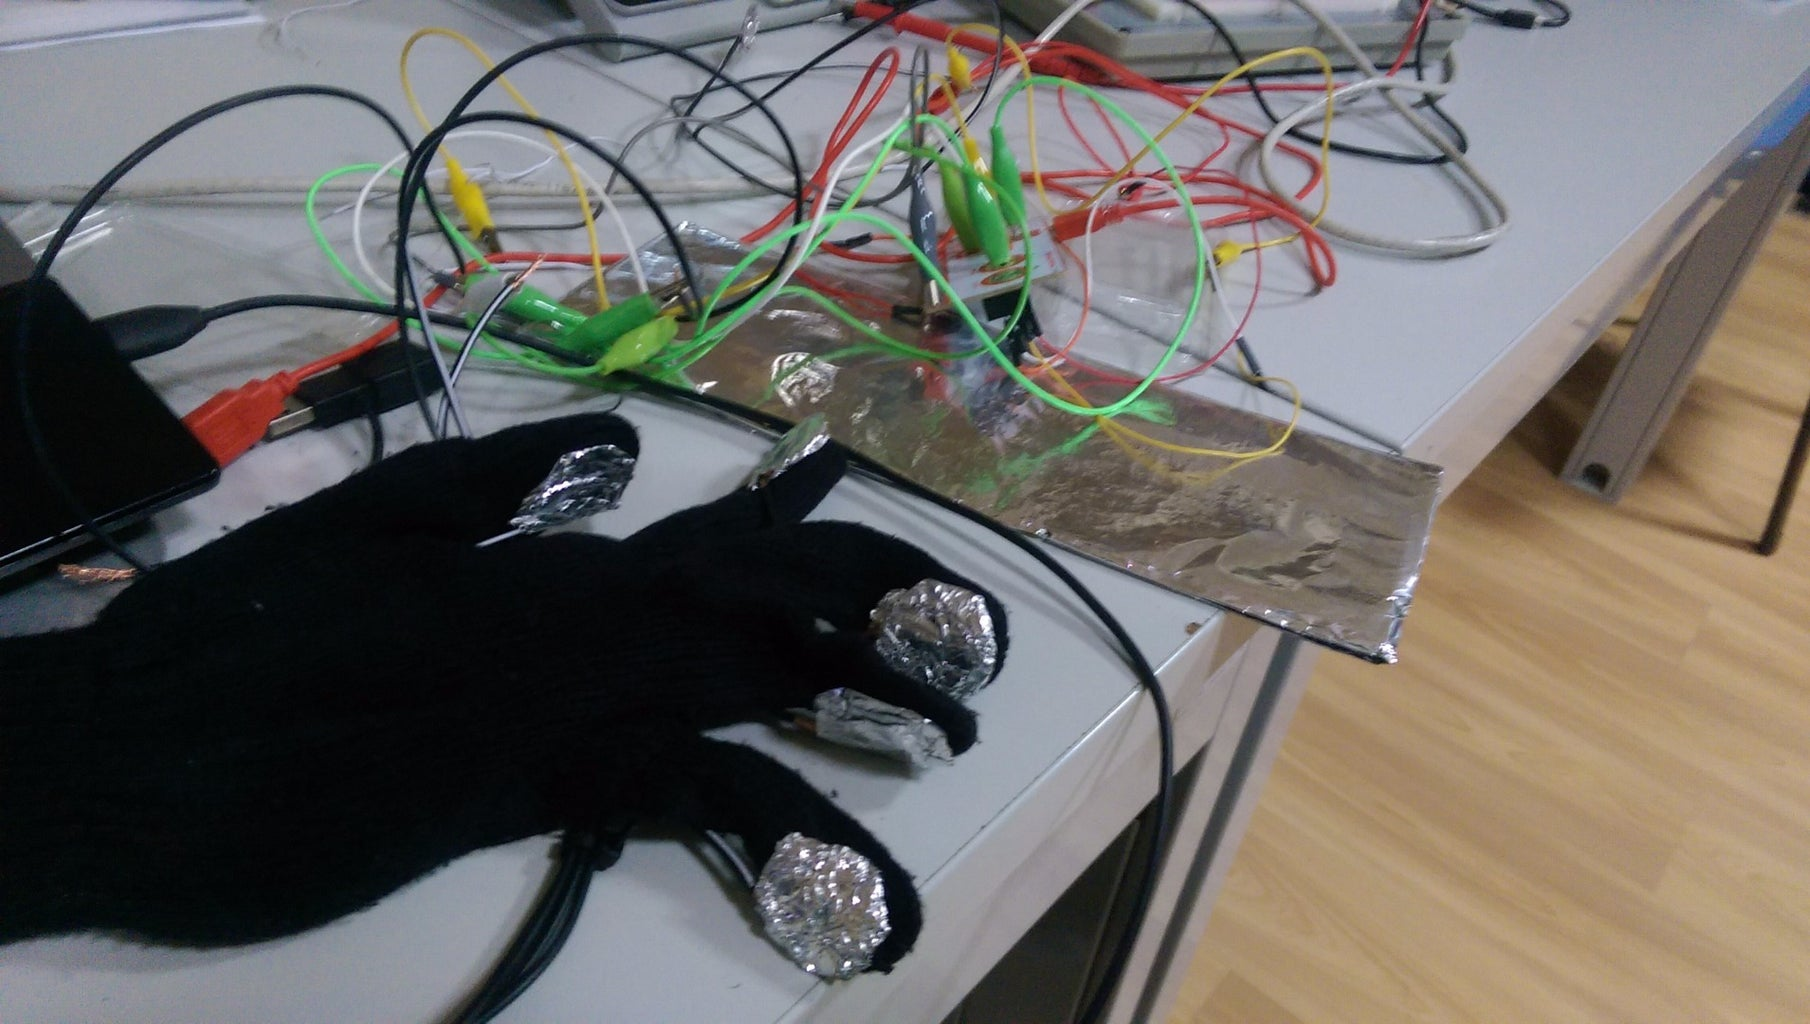 Connecting Piano Glove With Makey Makey